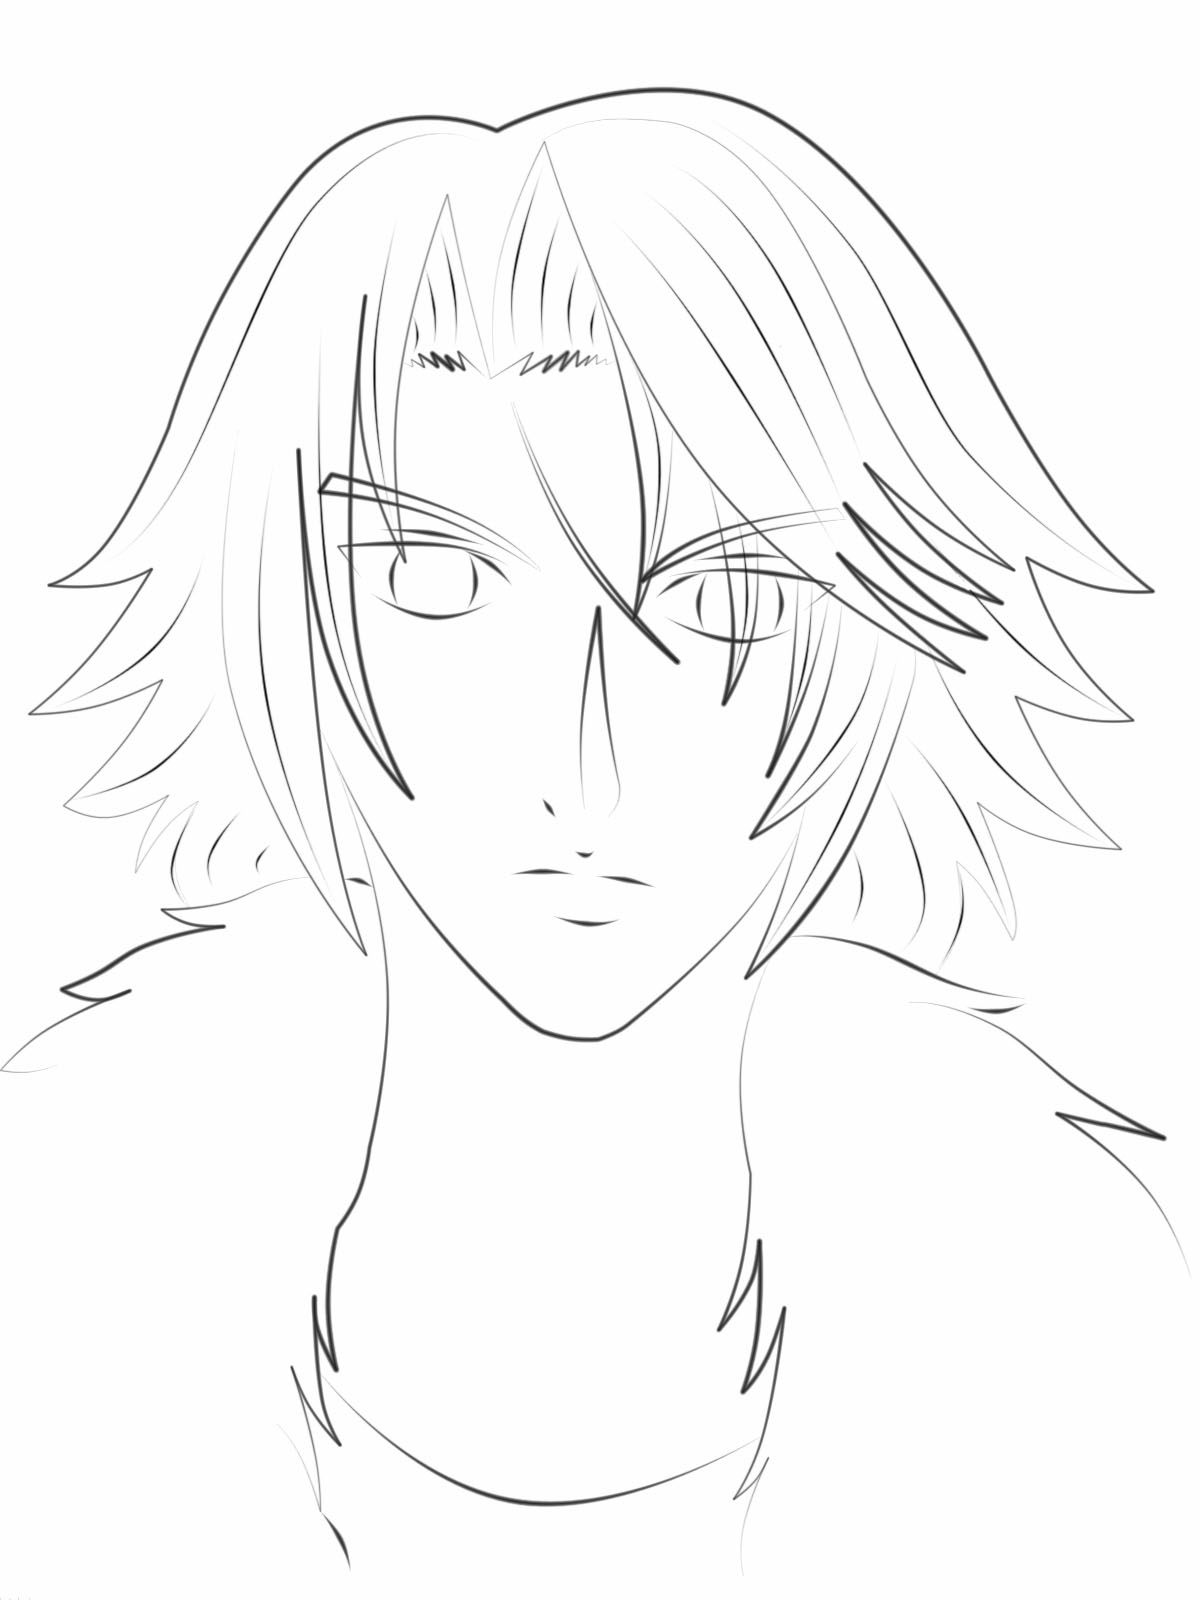 Squall (Leon) Lineart Practice by kamatari17